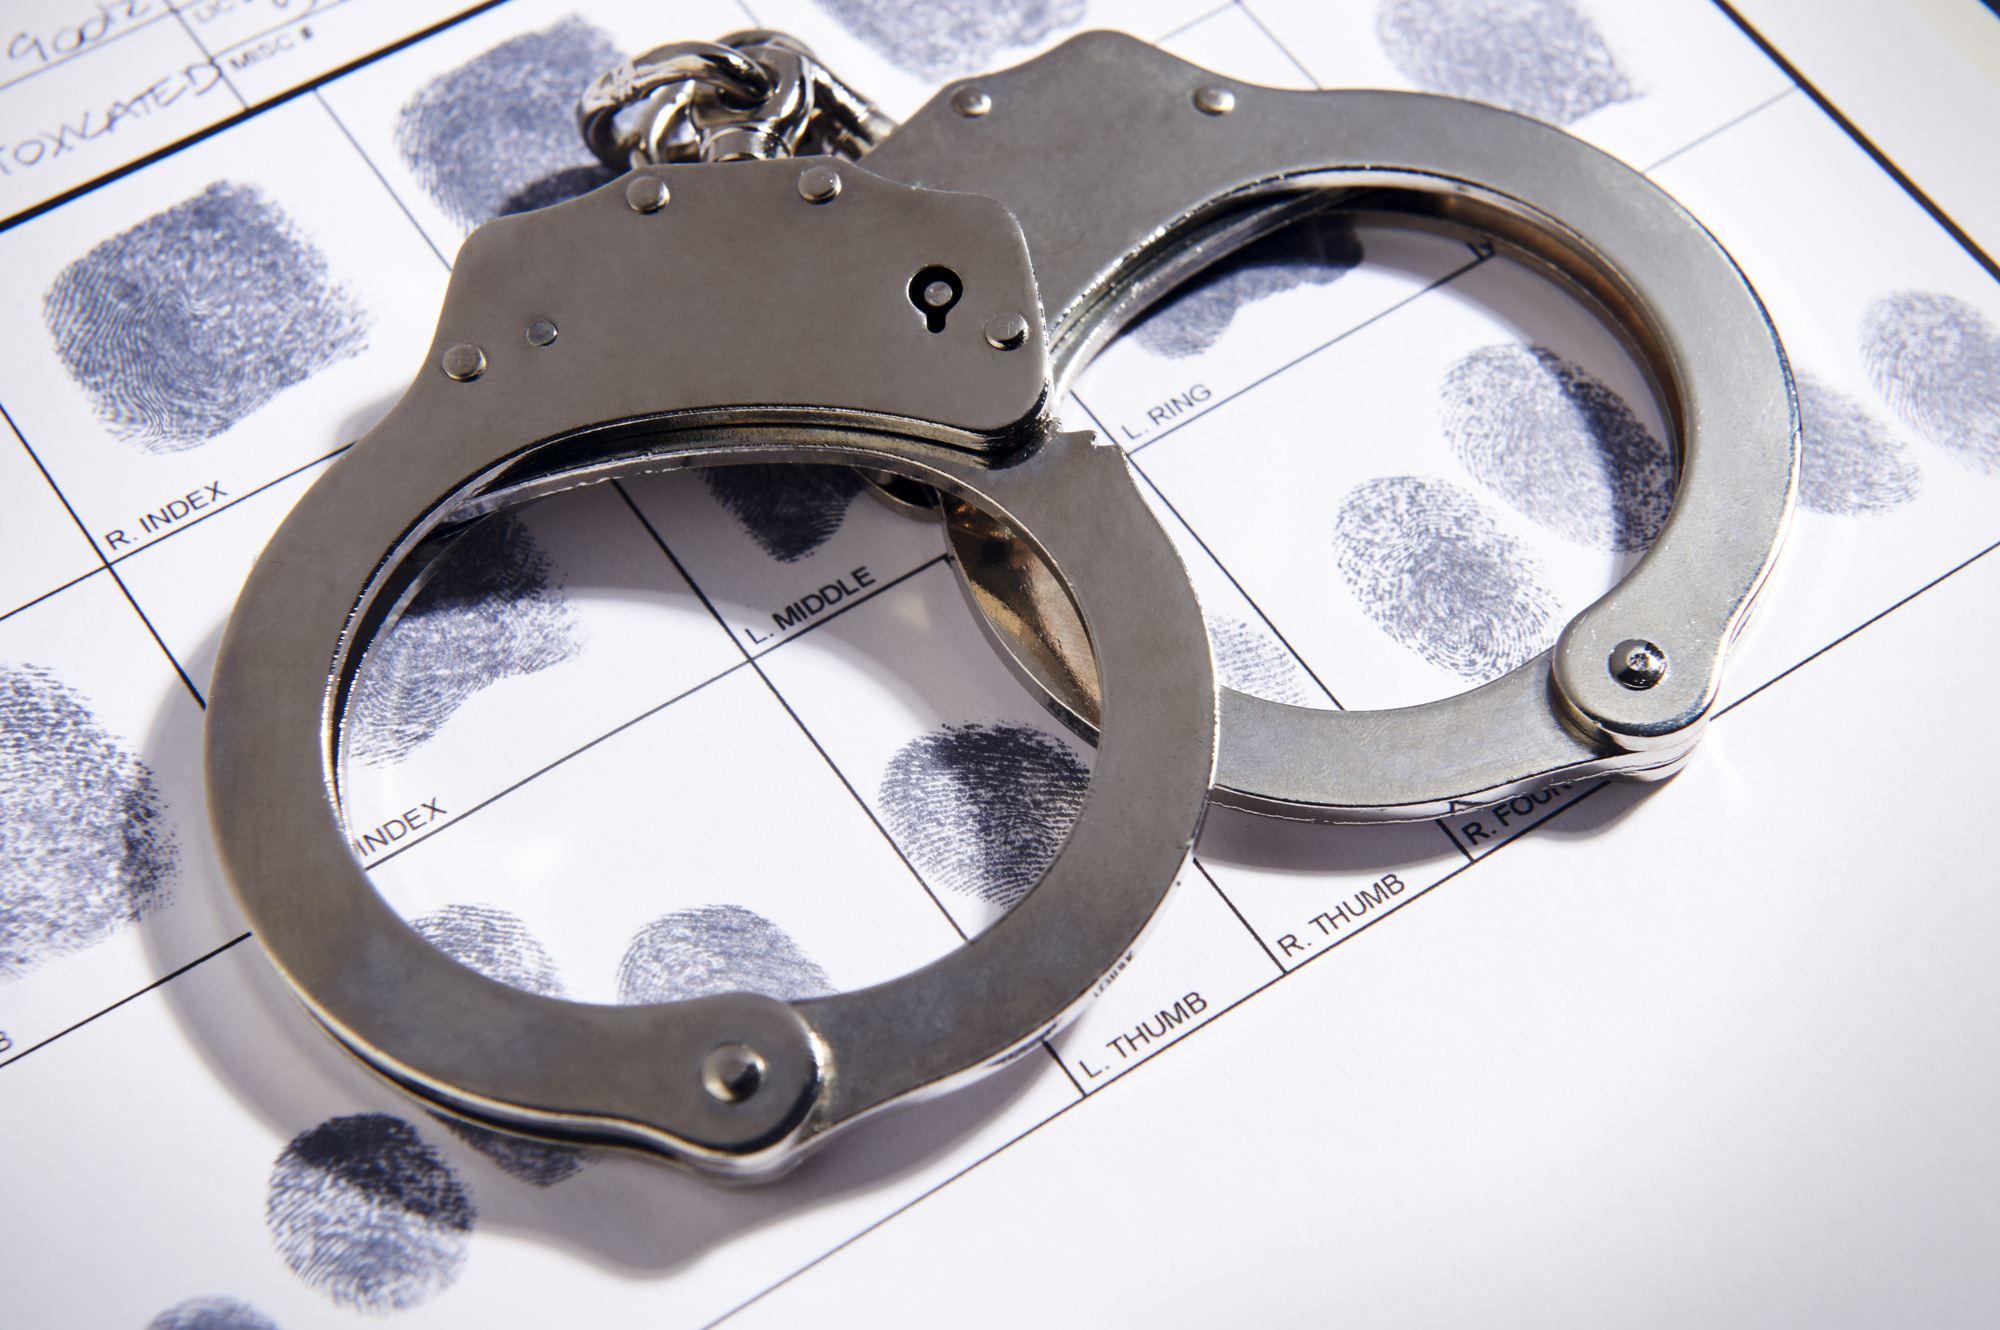 What Is A Public Arrest Record, And Where Can I Find Them? - Bama Blog